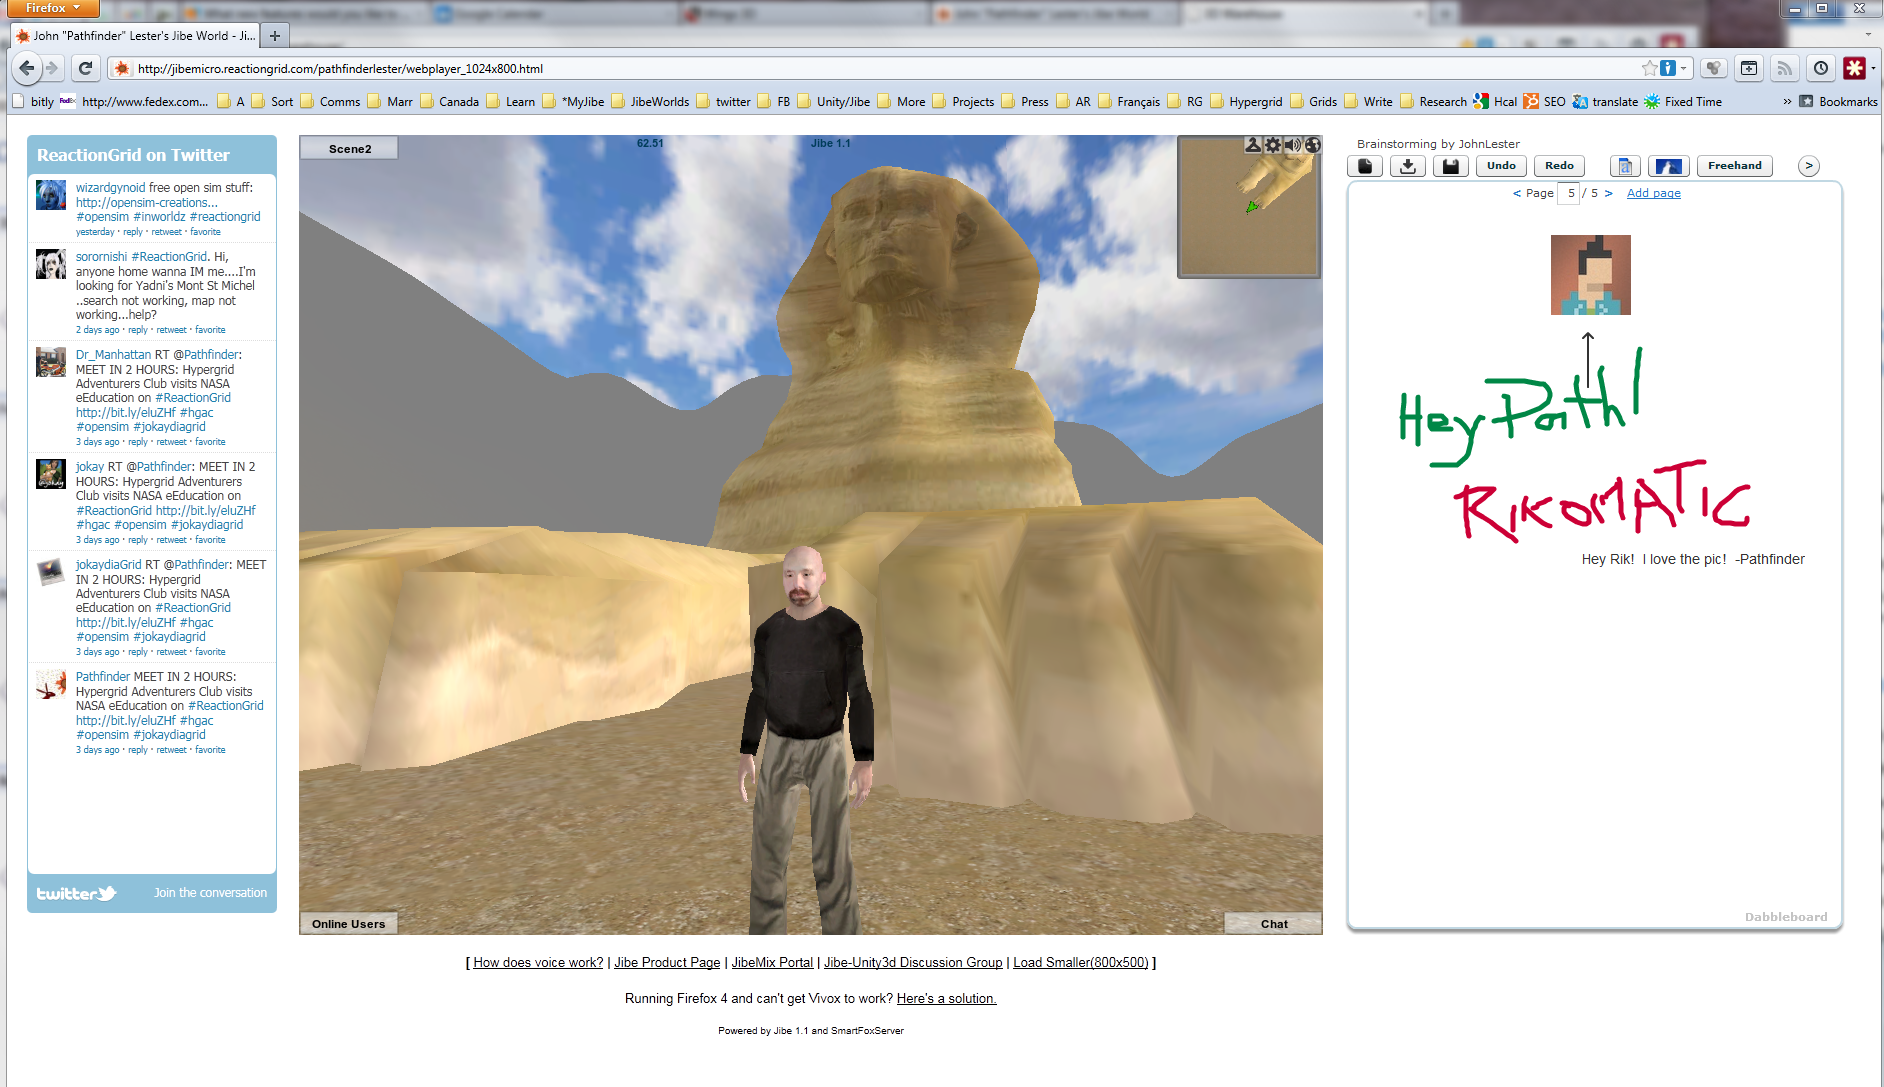 The Riddle of the Sphinx: Using Google Warehouse models in Jibe and